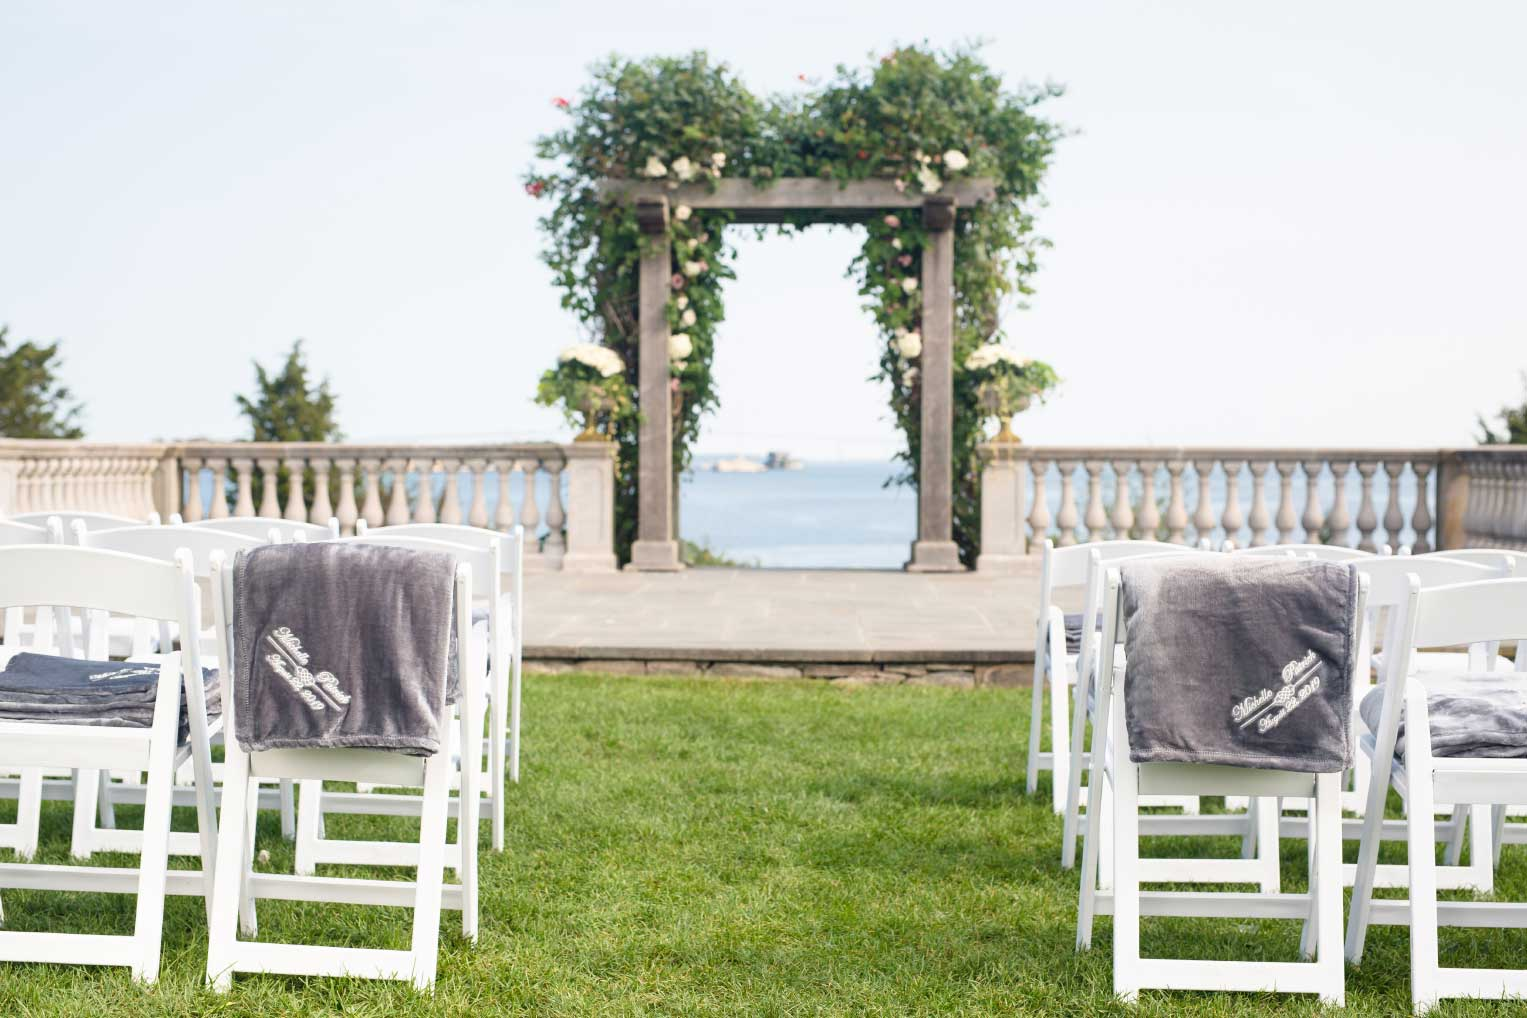 Our beautiful wedding blankets will make a lasting impression!